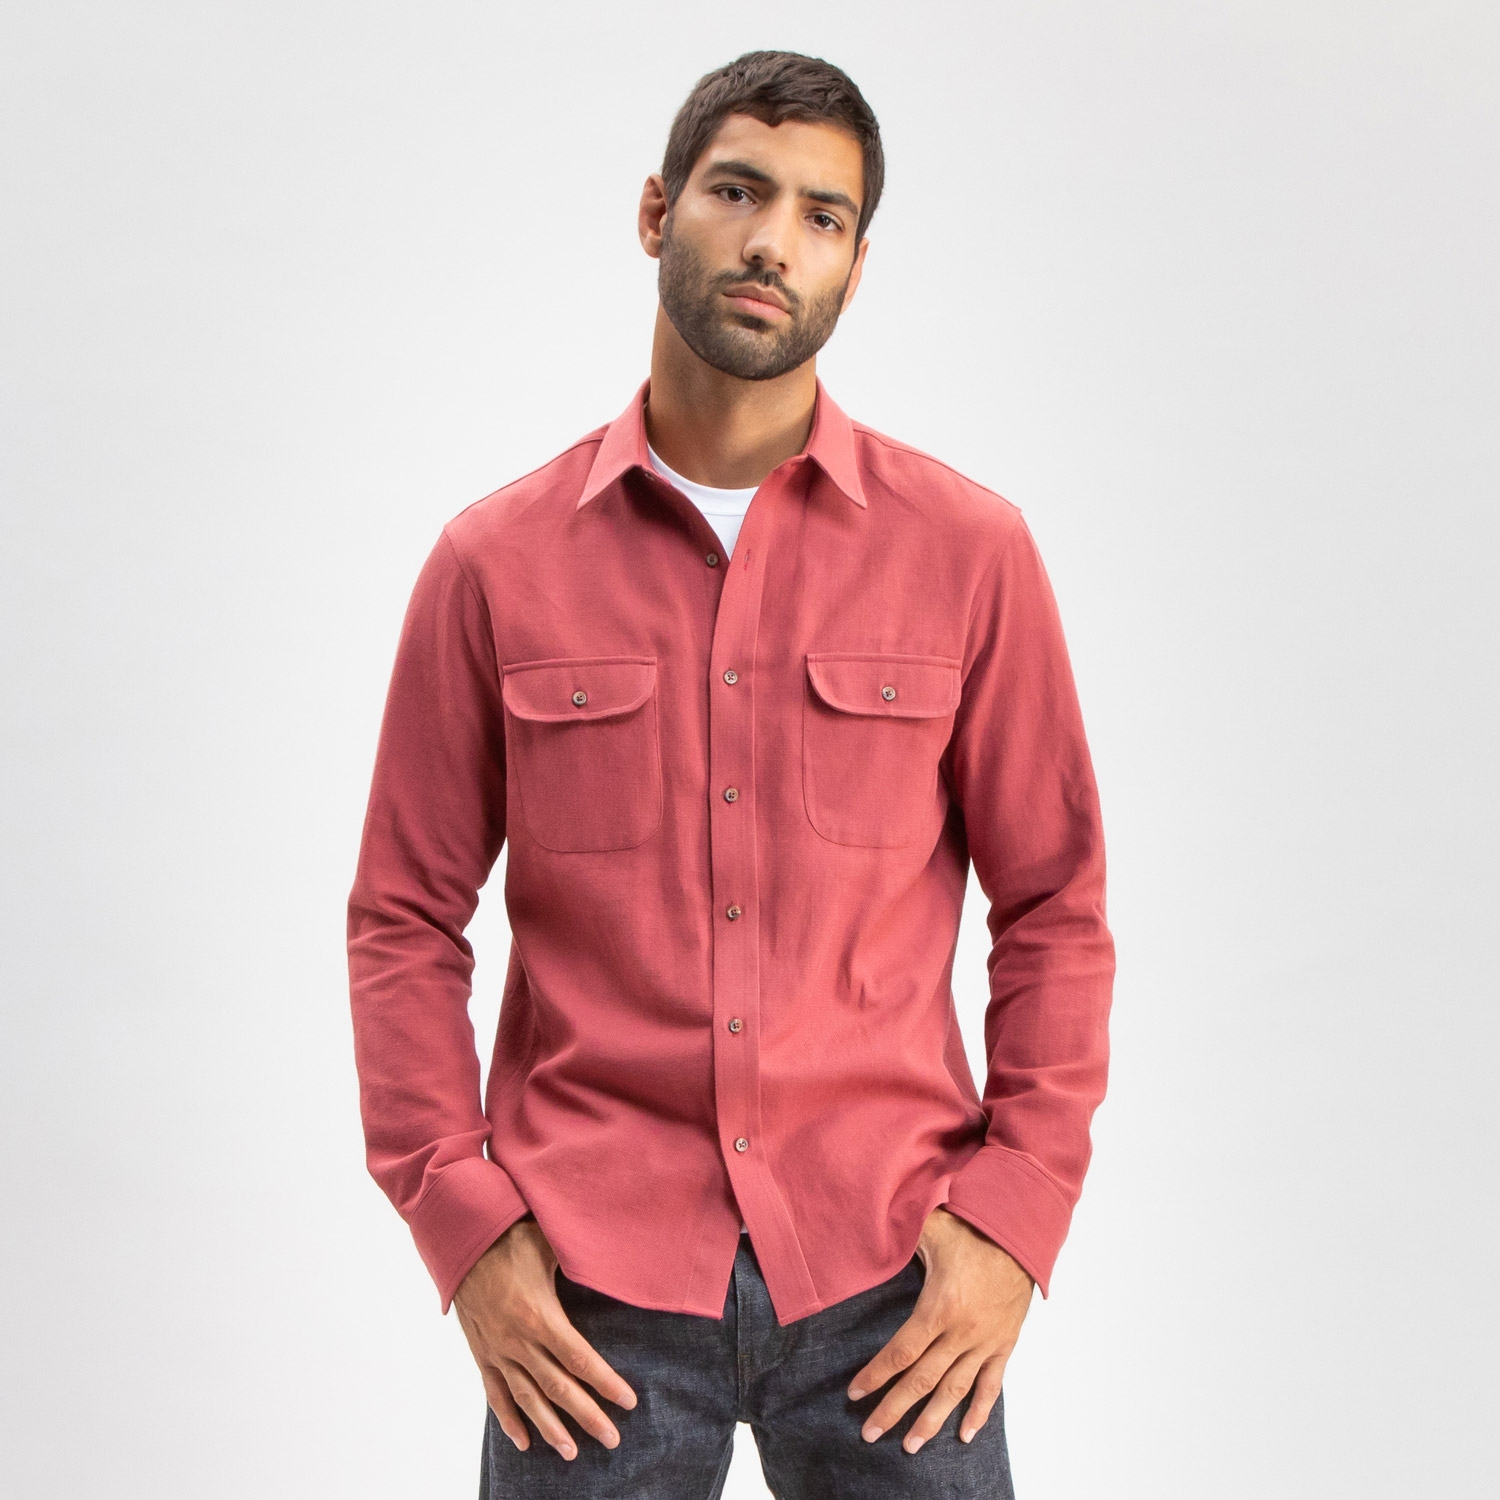 The Craftsman Red